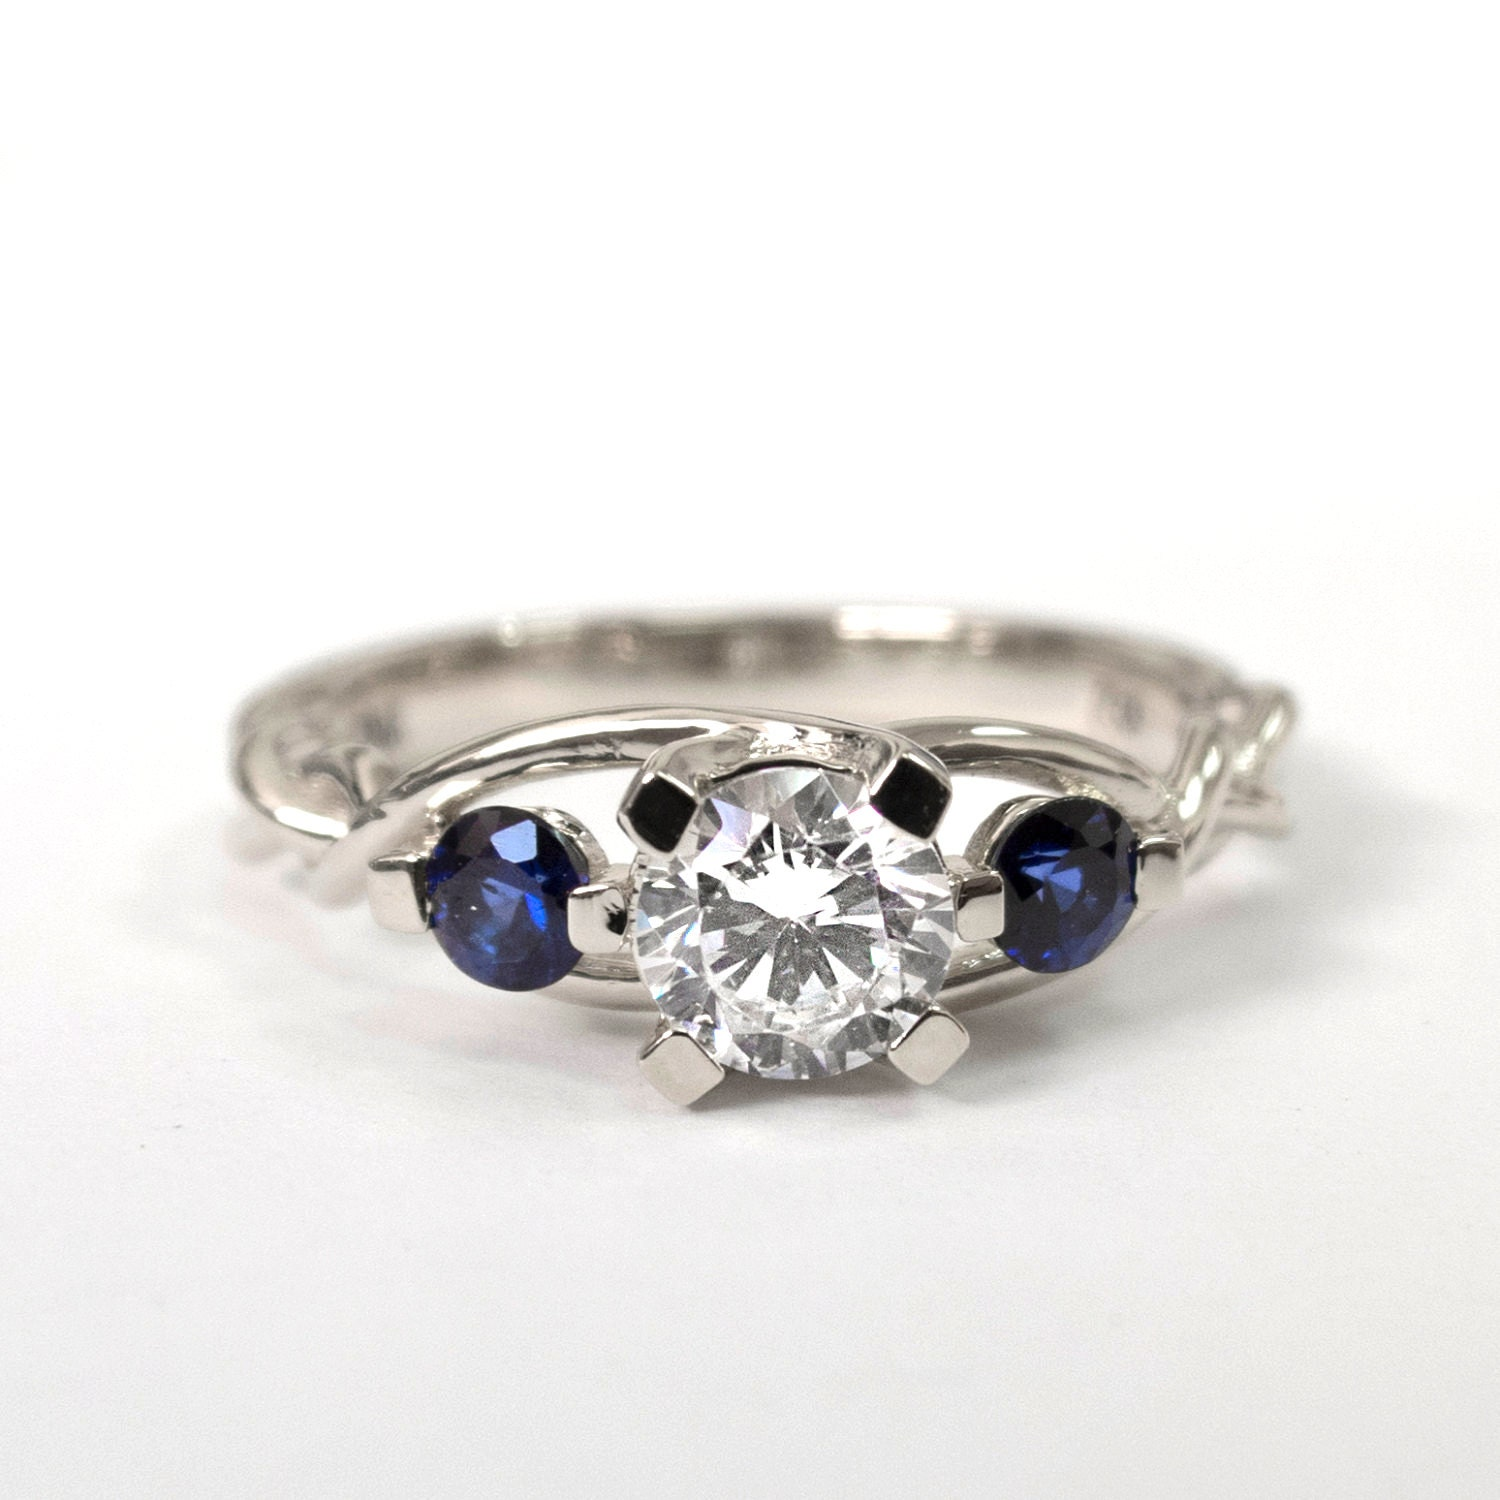 Engagement Rings No Stone: Braided Engagement Ring No.7 Diamonds And Sapphire